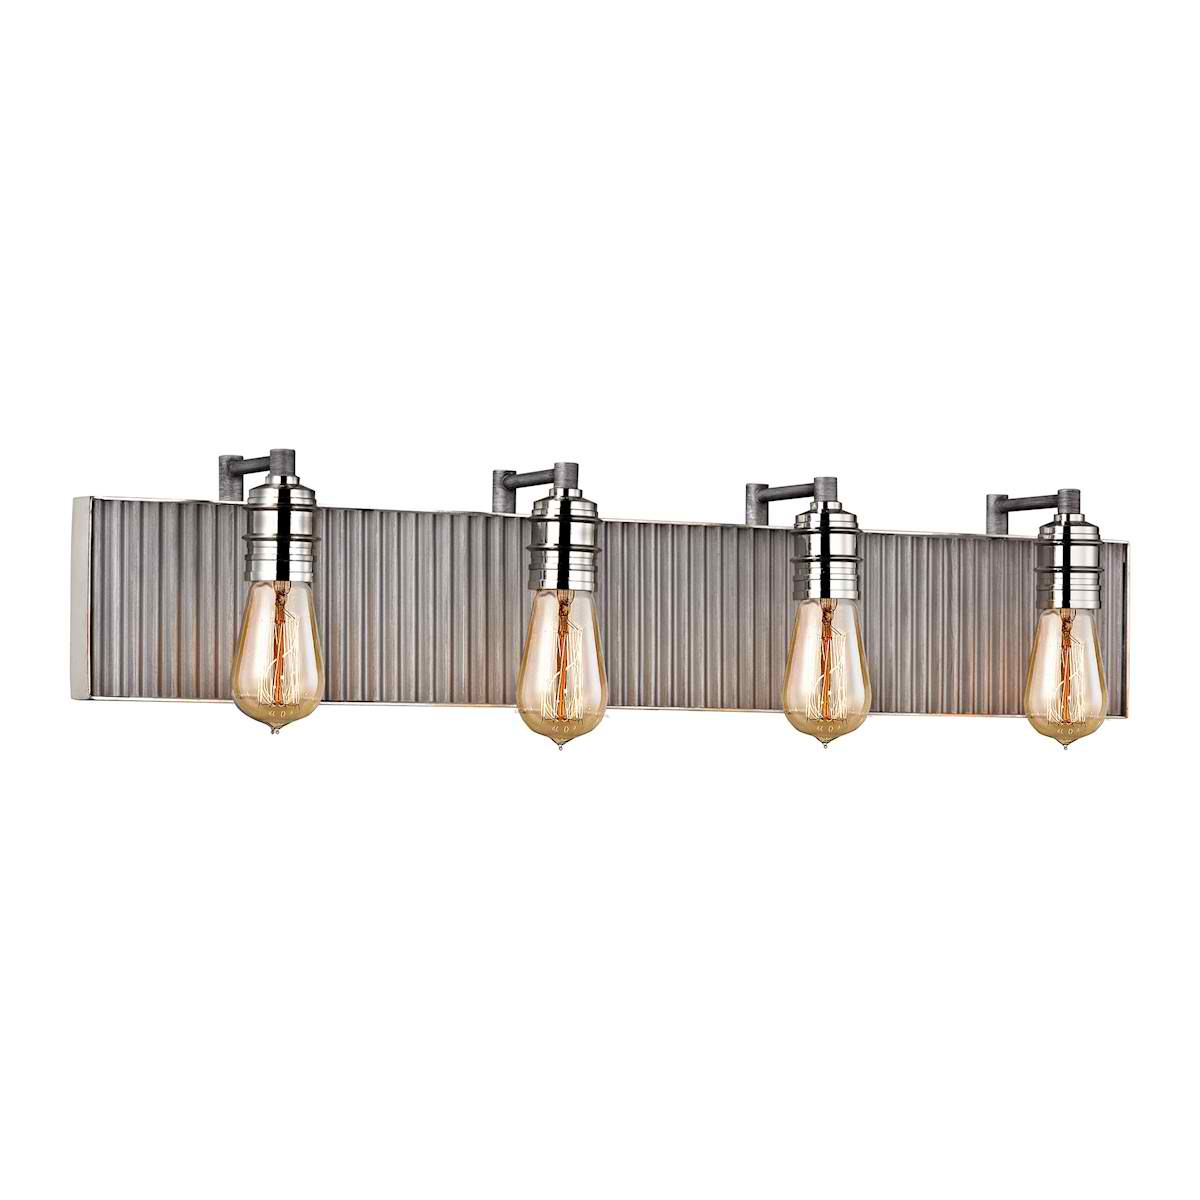 Corrugated Steel 4 Light Vanity in Weathered Zinc and Polished Nickel